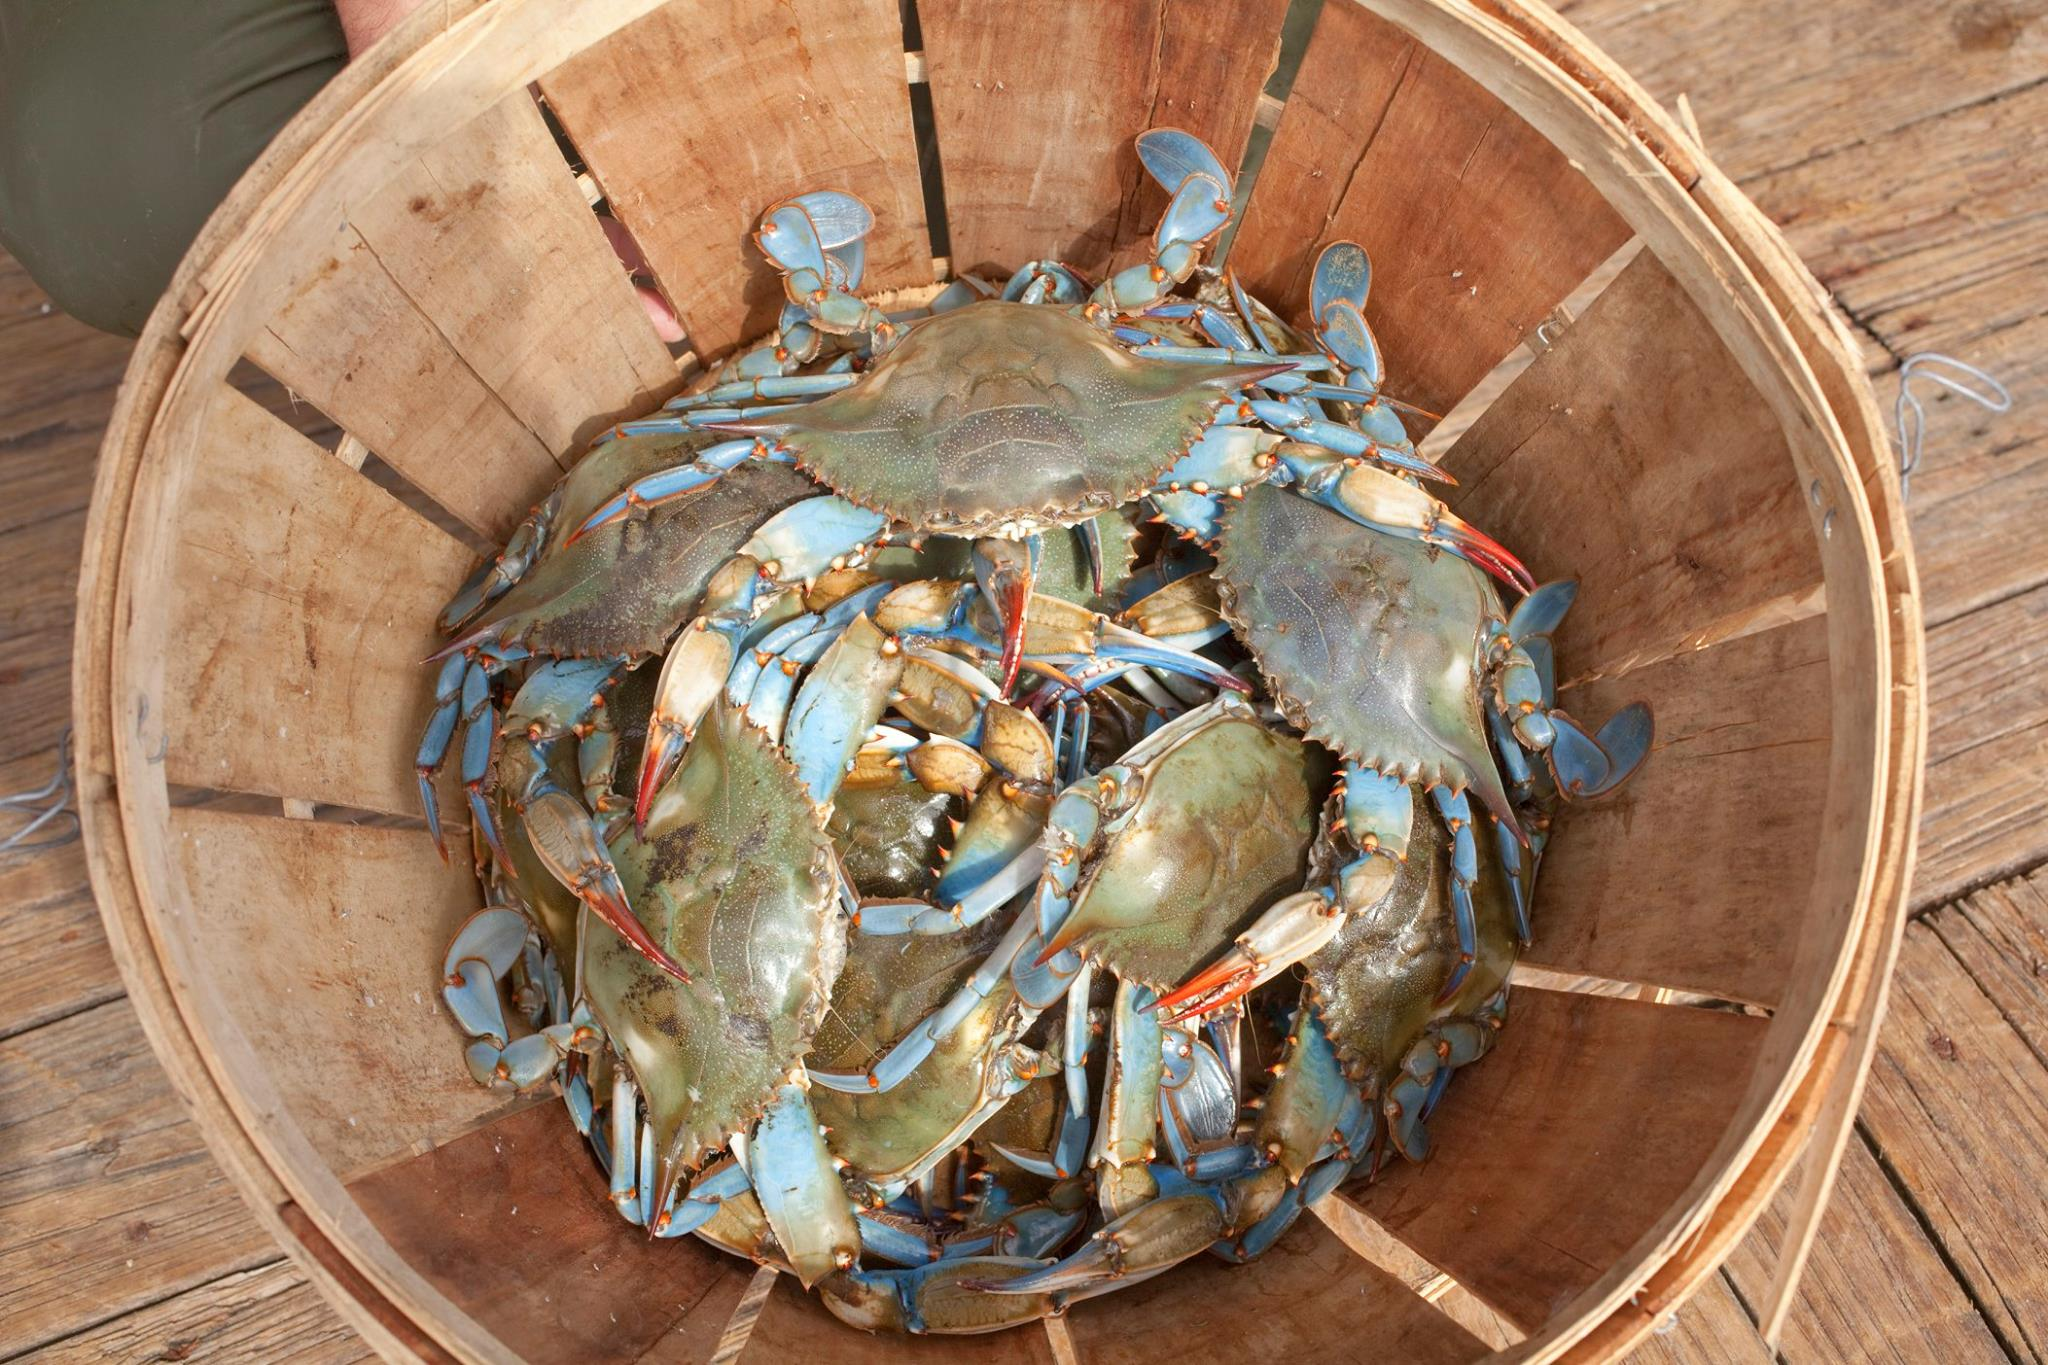 Louisiana_Blue_Crab_Louisiana_Seafood_Marketing_and_Promotions_Board_Deanies_Seafood_Restaurant_New_Orleans.jpg